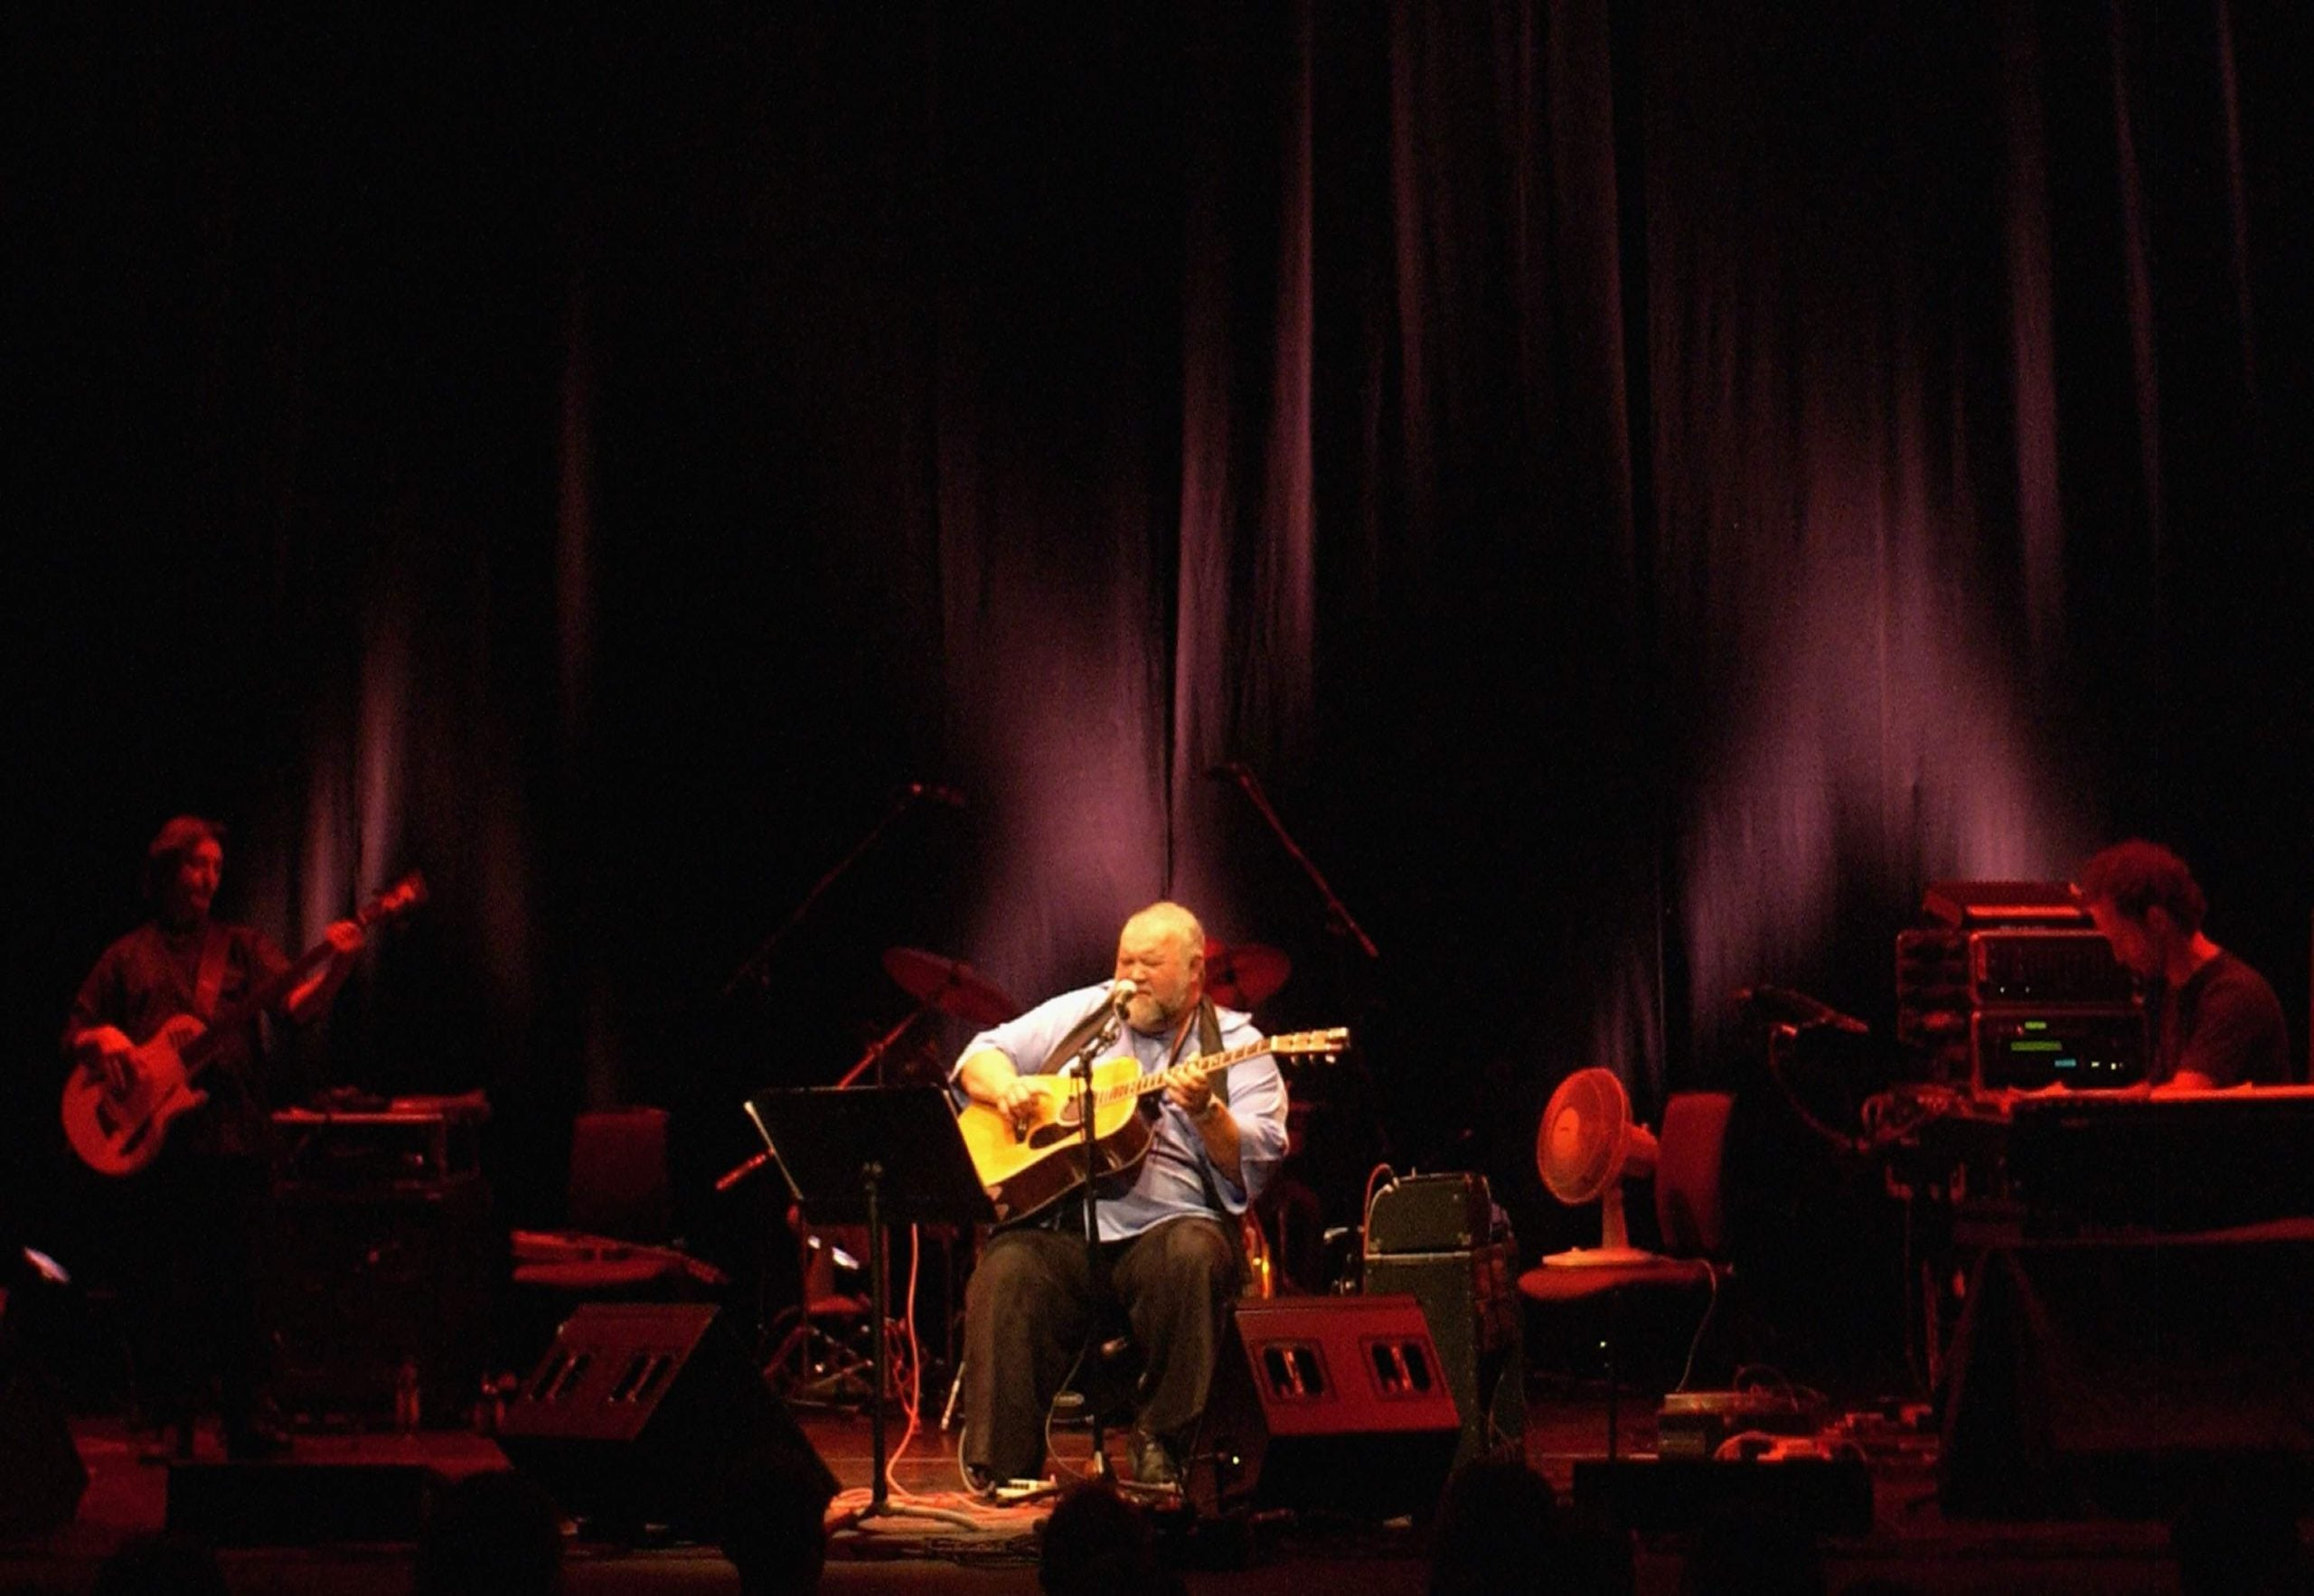 """Ian Rankin on Solid Air by John Martyn: """"The voice of a whisky-soaked angel"""""""